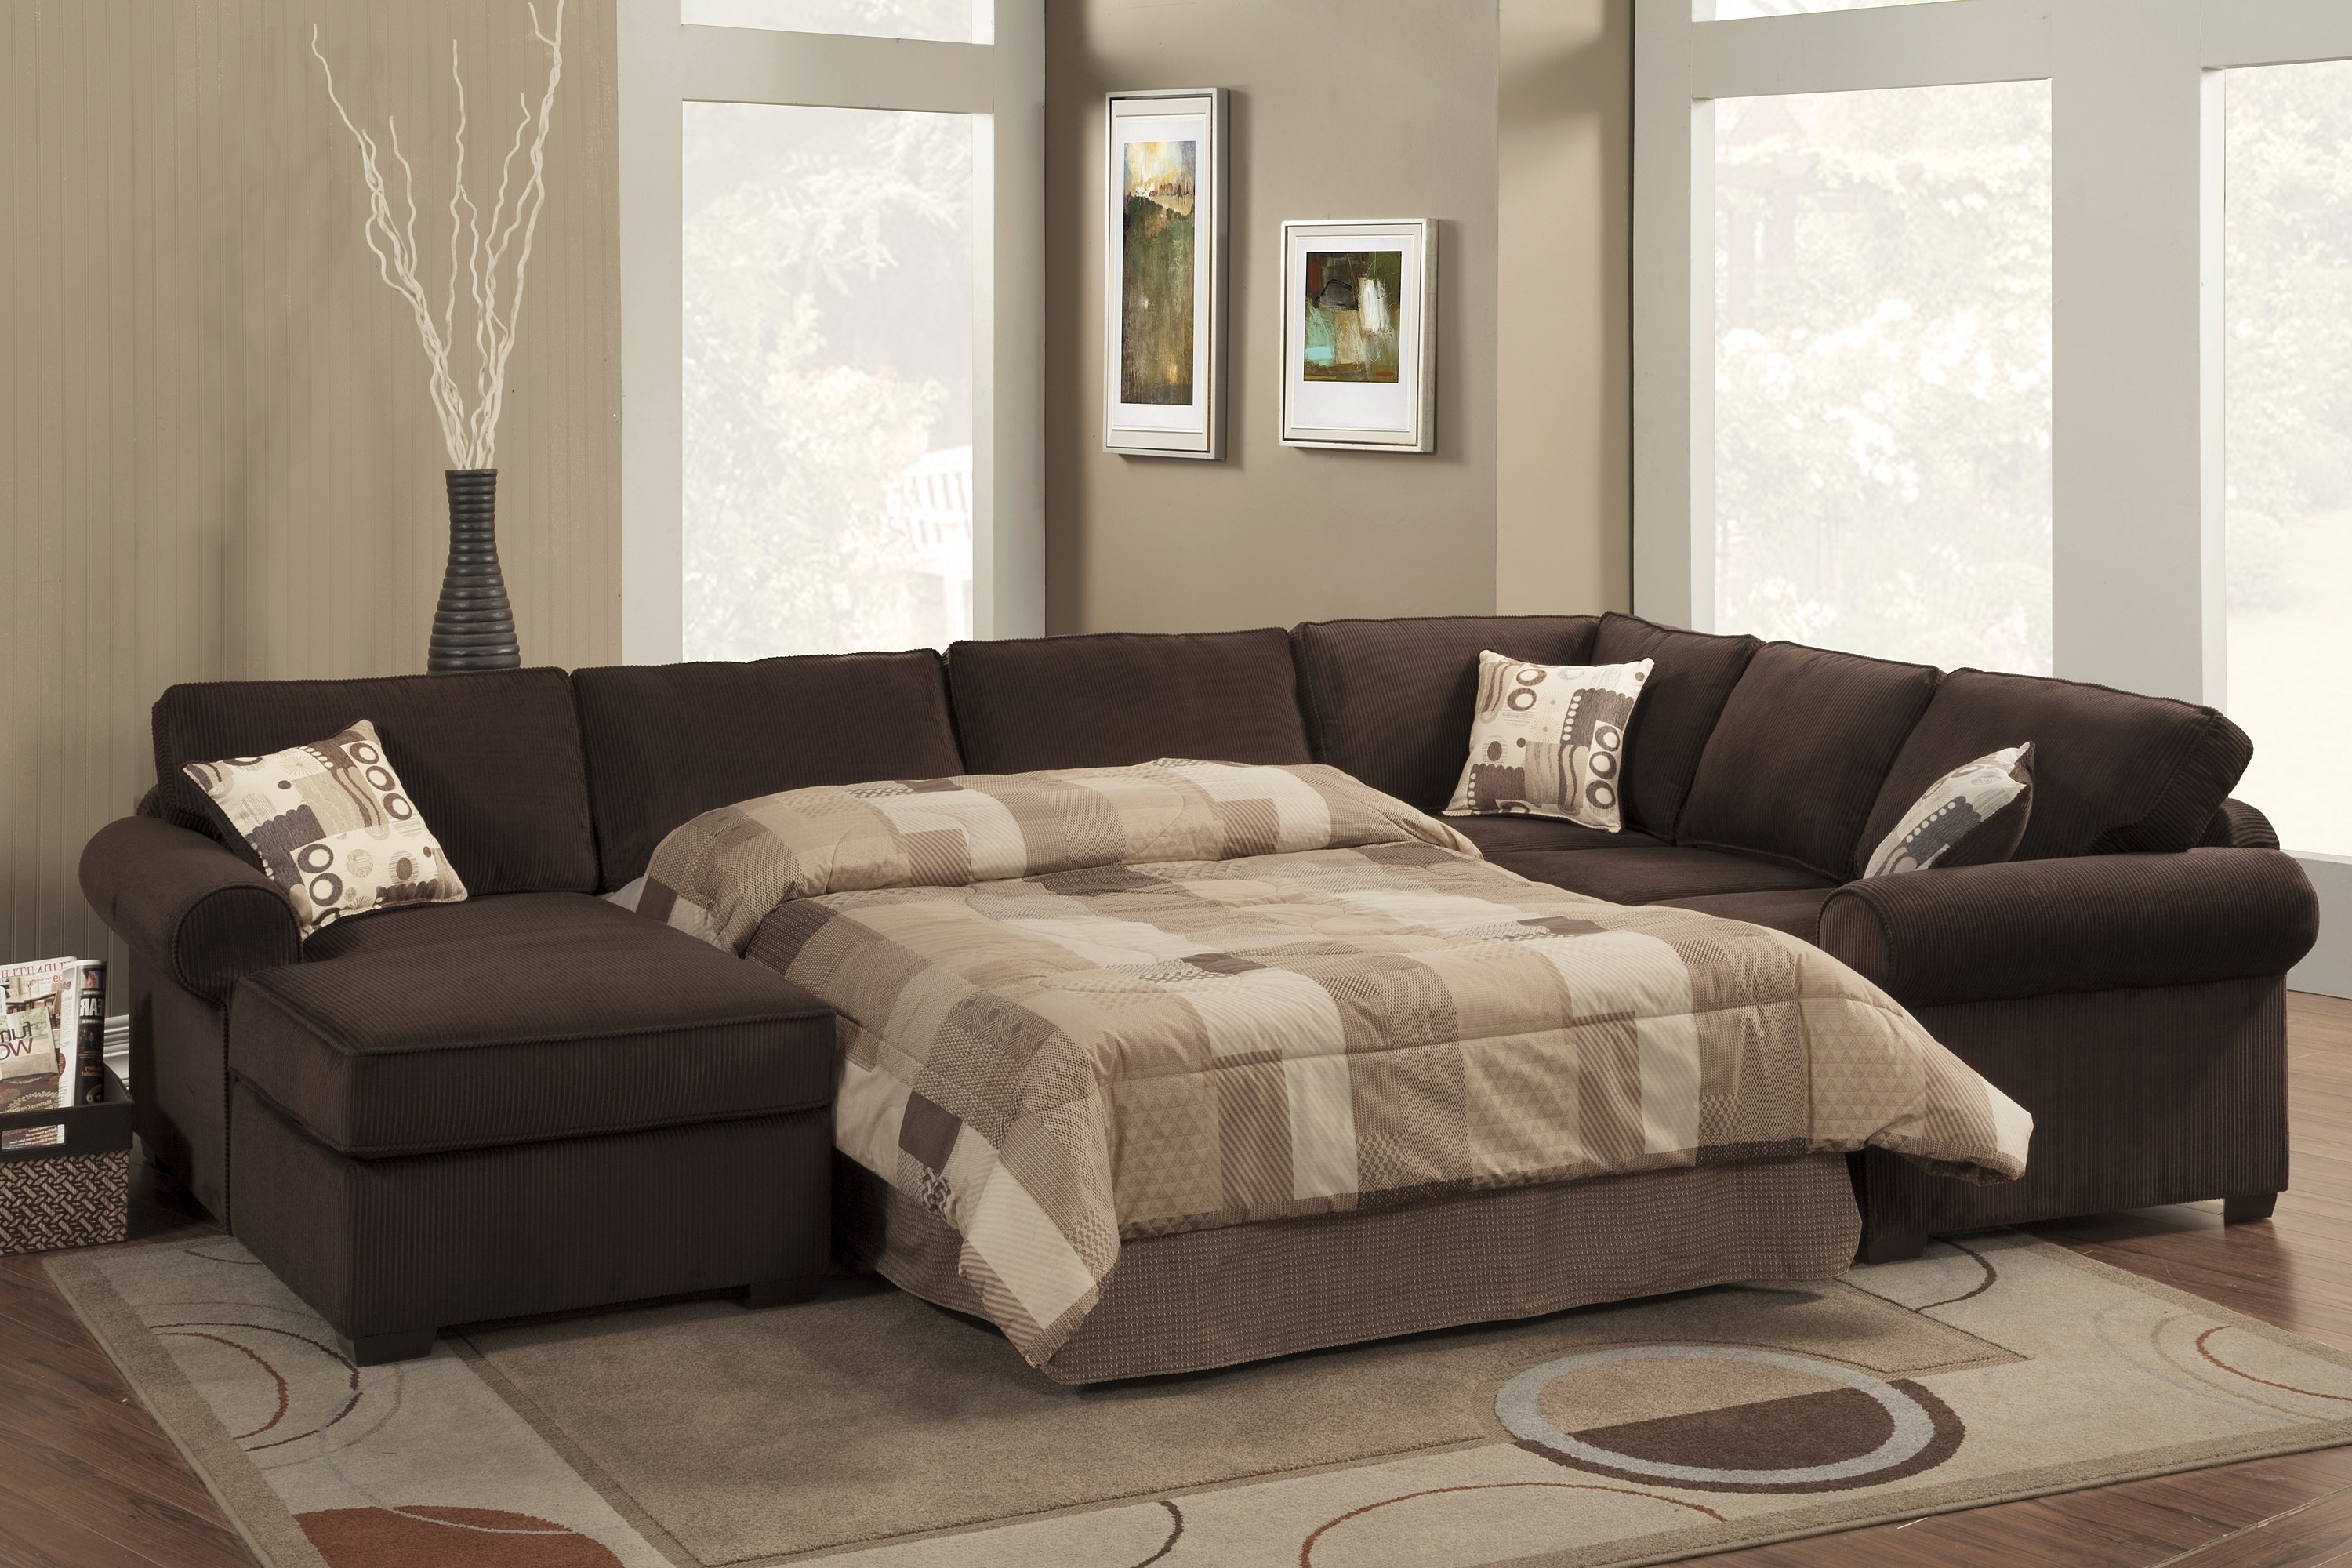 King Size Sleeper Sofas In Best And Newest Sofa : Lovely Sectional Sofa Queen Bed Pull Out Couch Quality Beds (View 8 of 20)